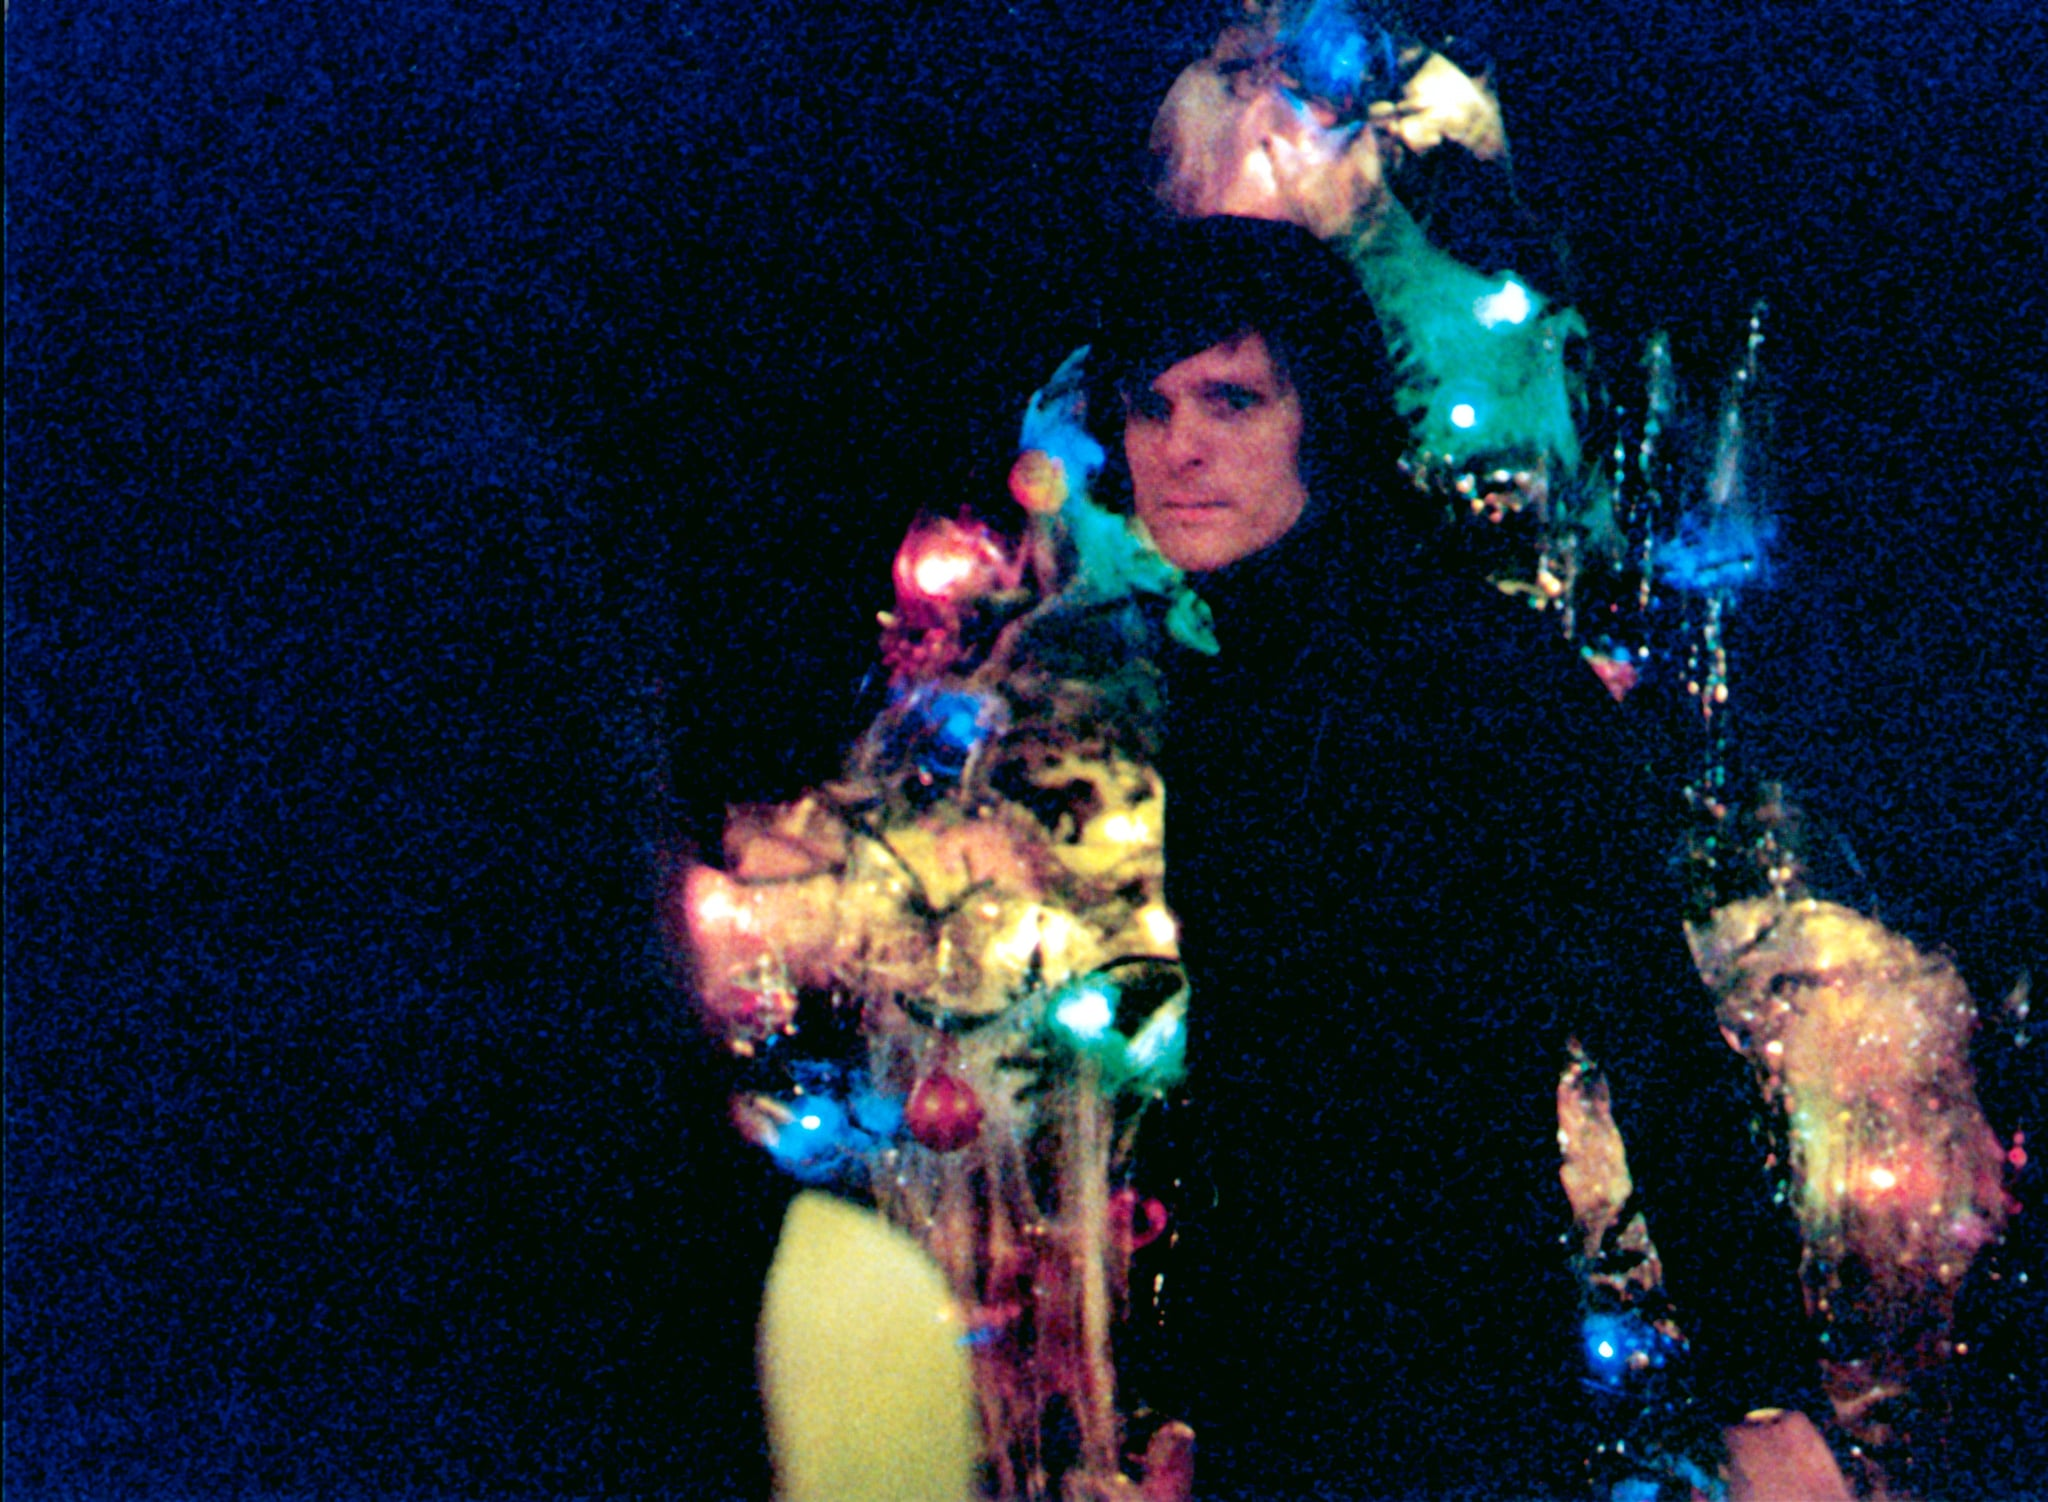 Black Christmas 1974.Black Christmas 1974 Just In Time For The Holidays Here